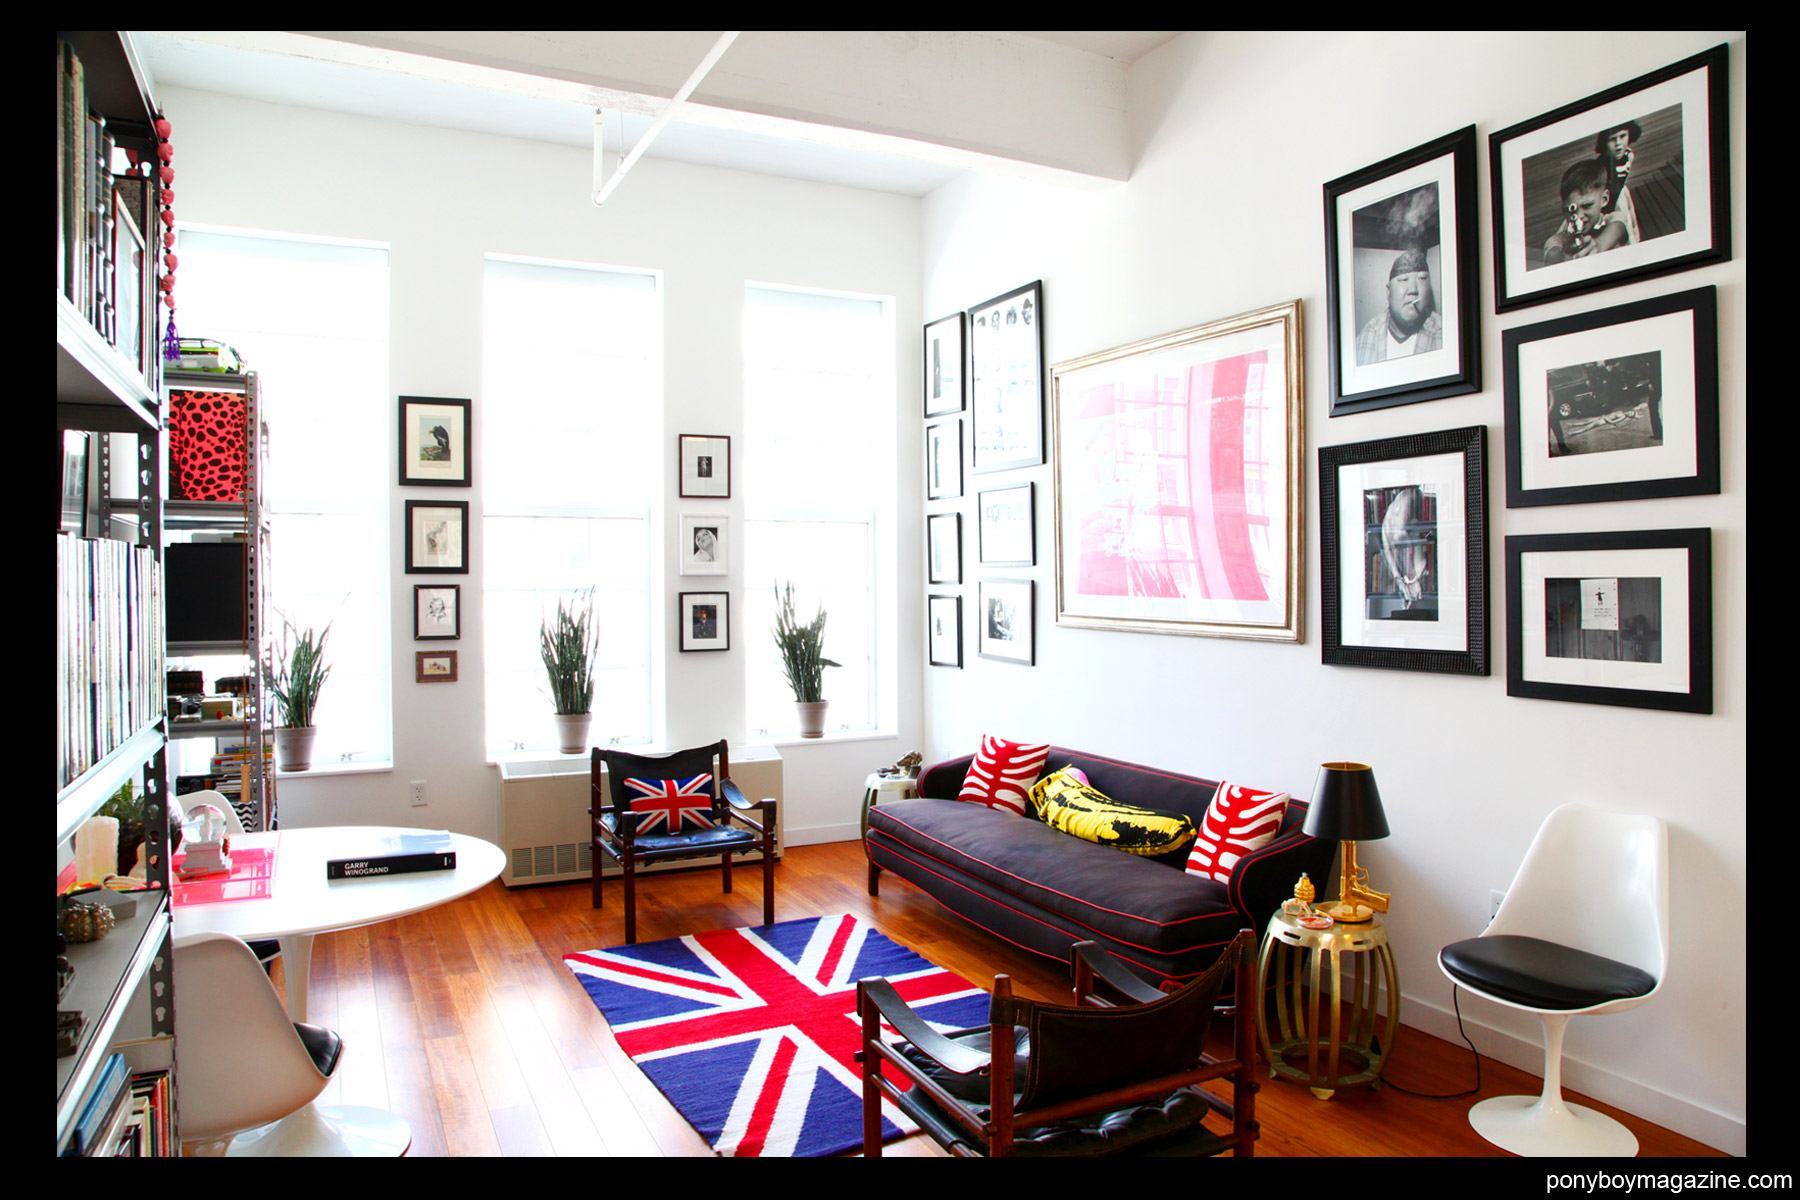 The New York city living room of editor Peter Davis. Photographed by Alexander Thompson for Ponyboy Magazine.